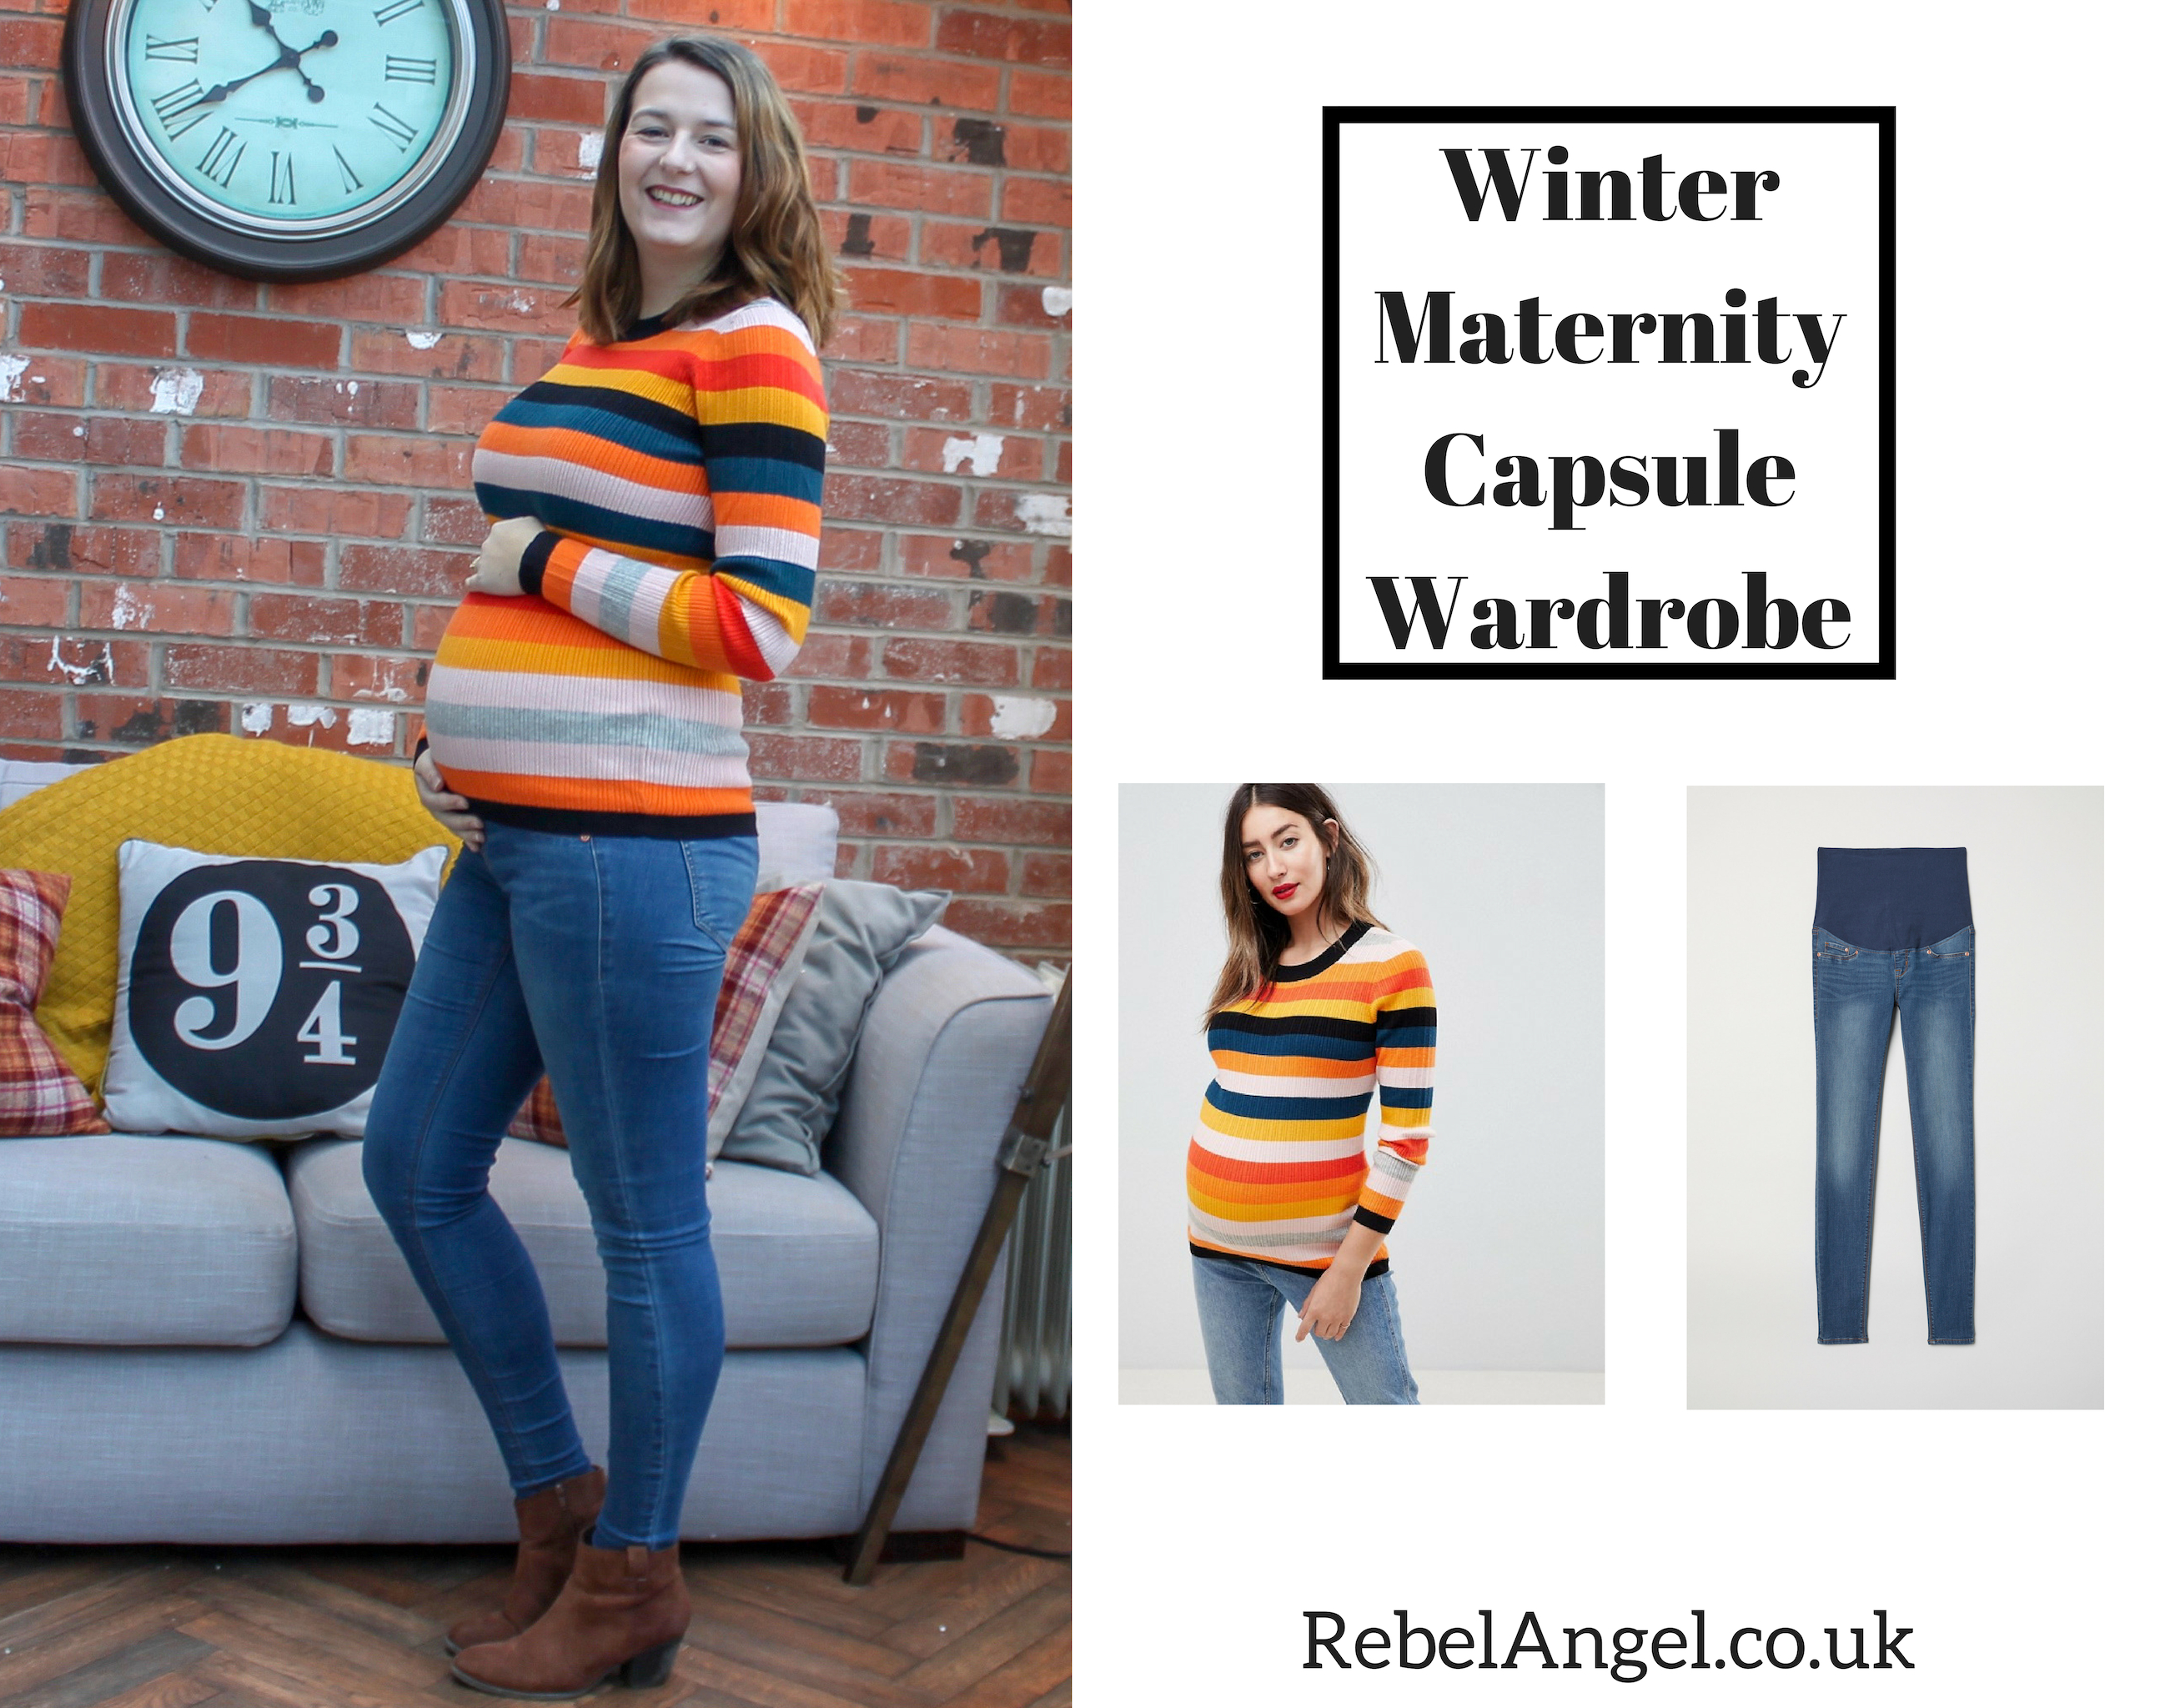 Winter Maternity Capsule Wardrobe - striped jumper and jeans